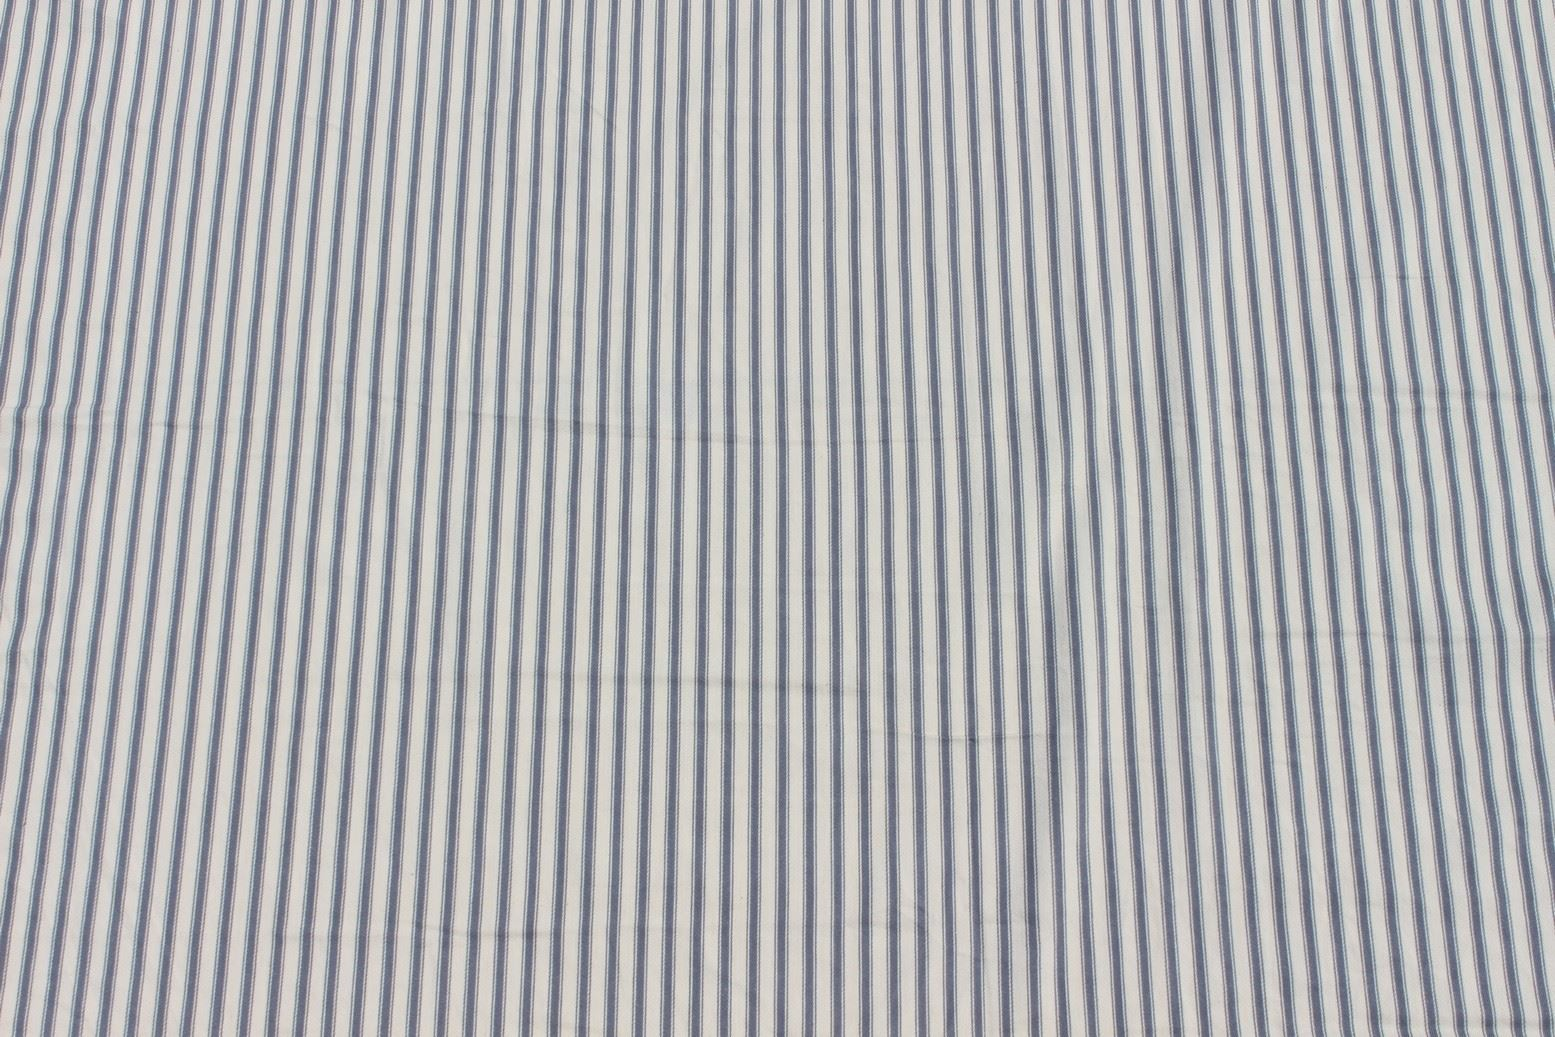 Details About Vintage Cotton Ticking Stripe Deck Chair 100 Cotton Furniture Upholstery Fabric